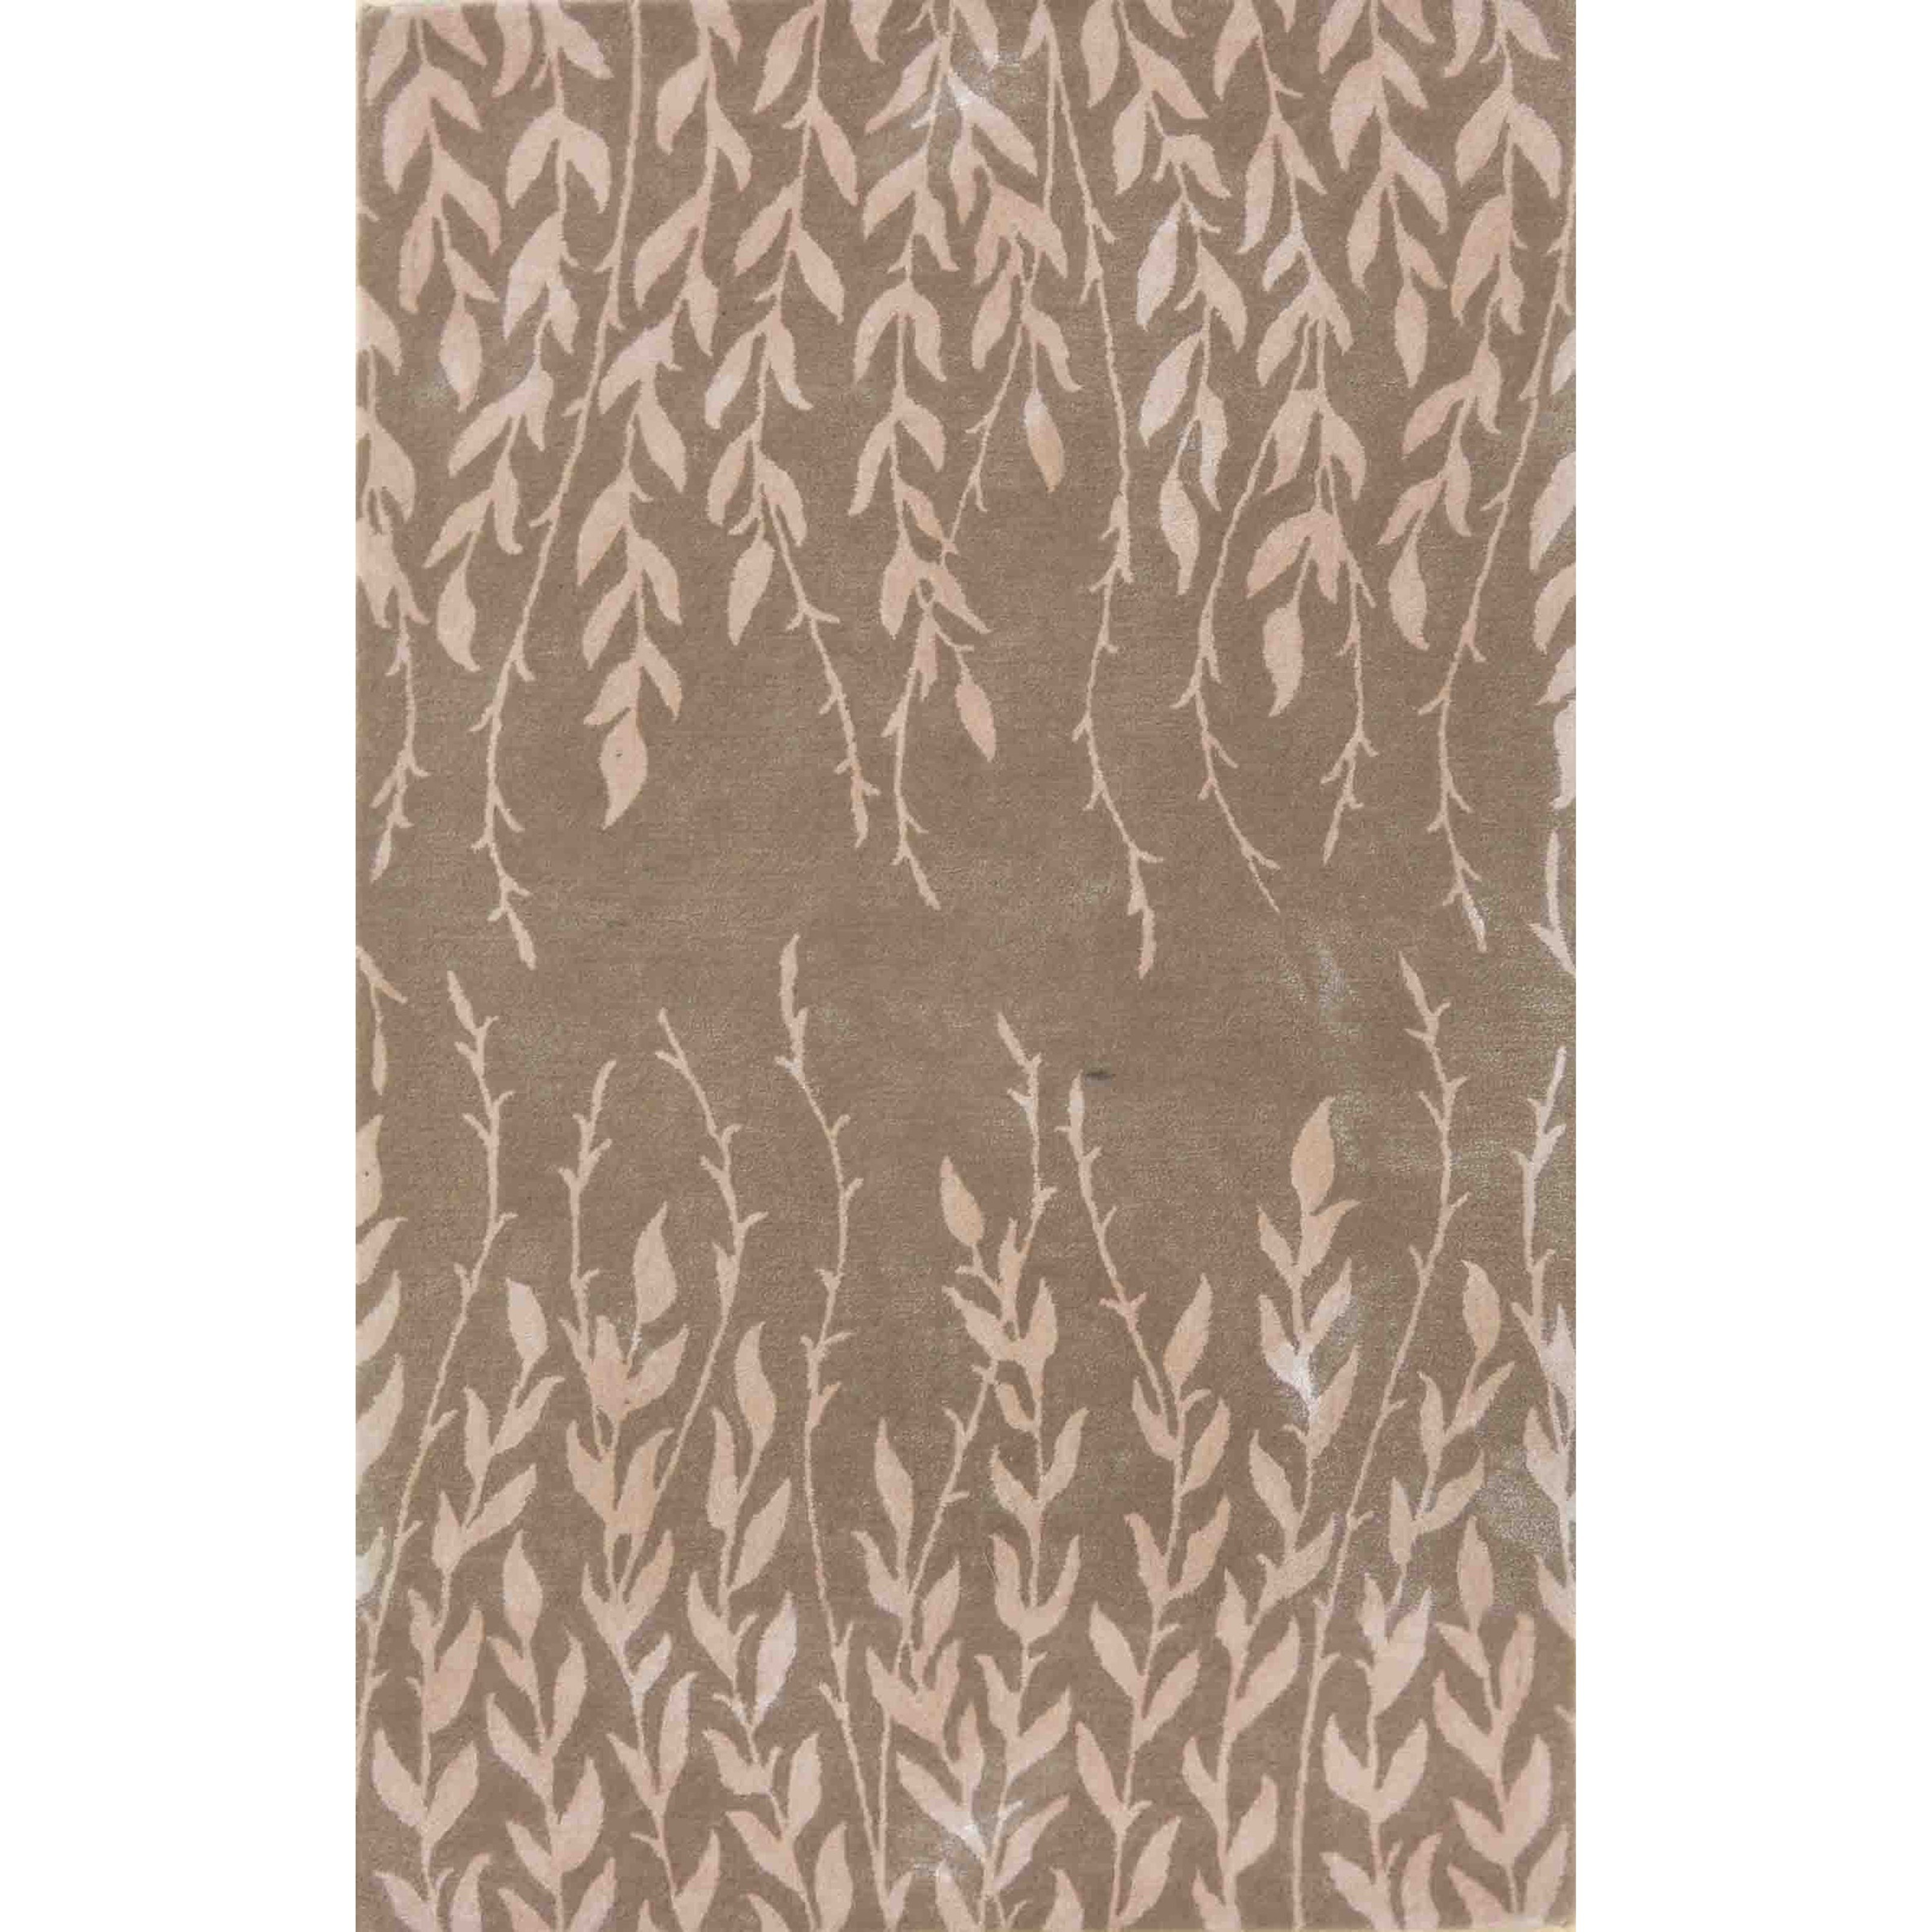 Bob Mackie Home 8' X 11' Beige Tranquility Area Rug by Kas at Wilson's Furniture